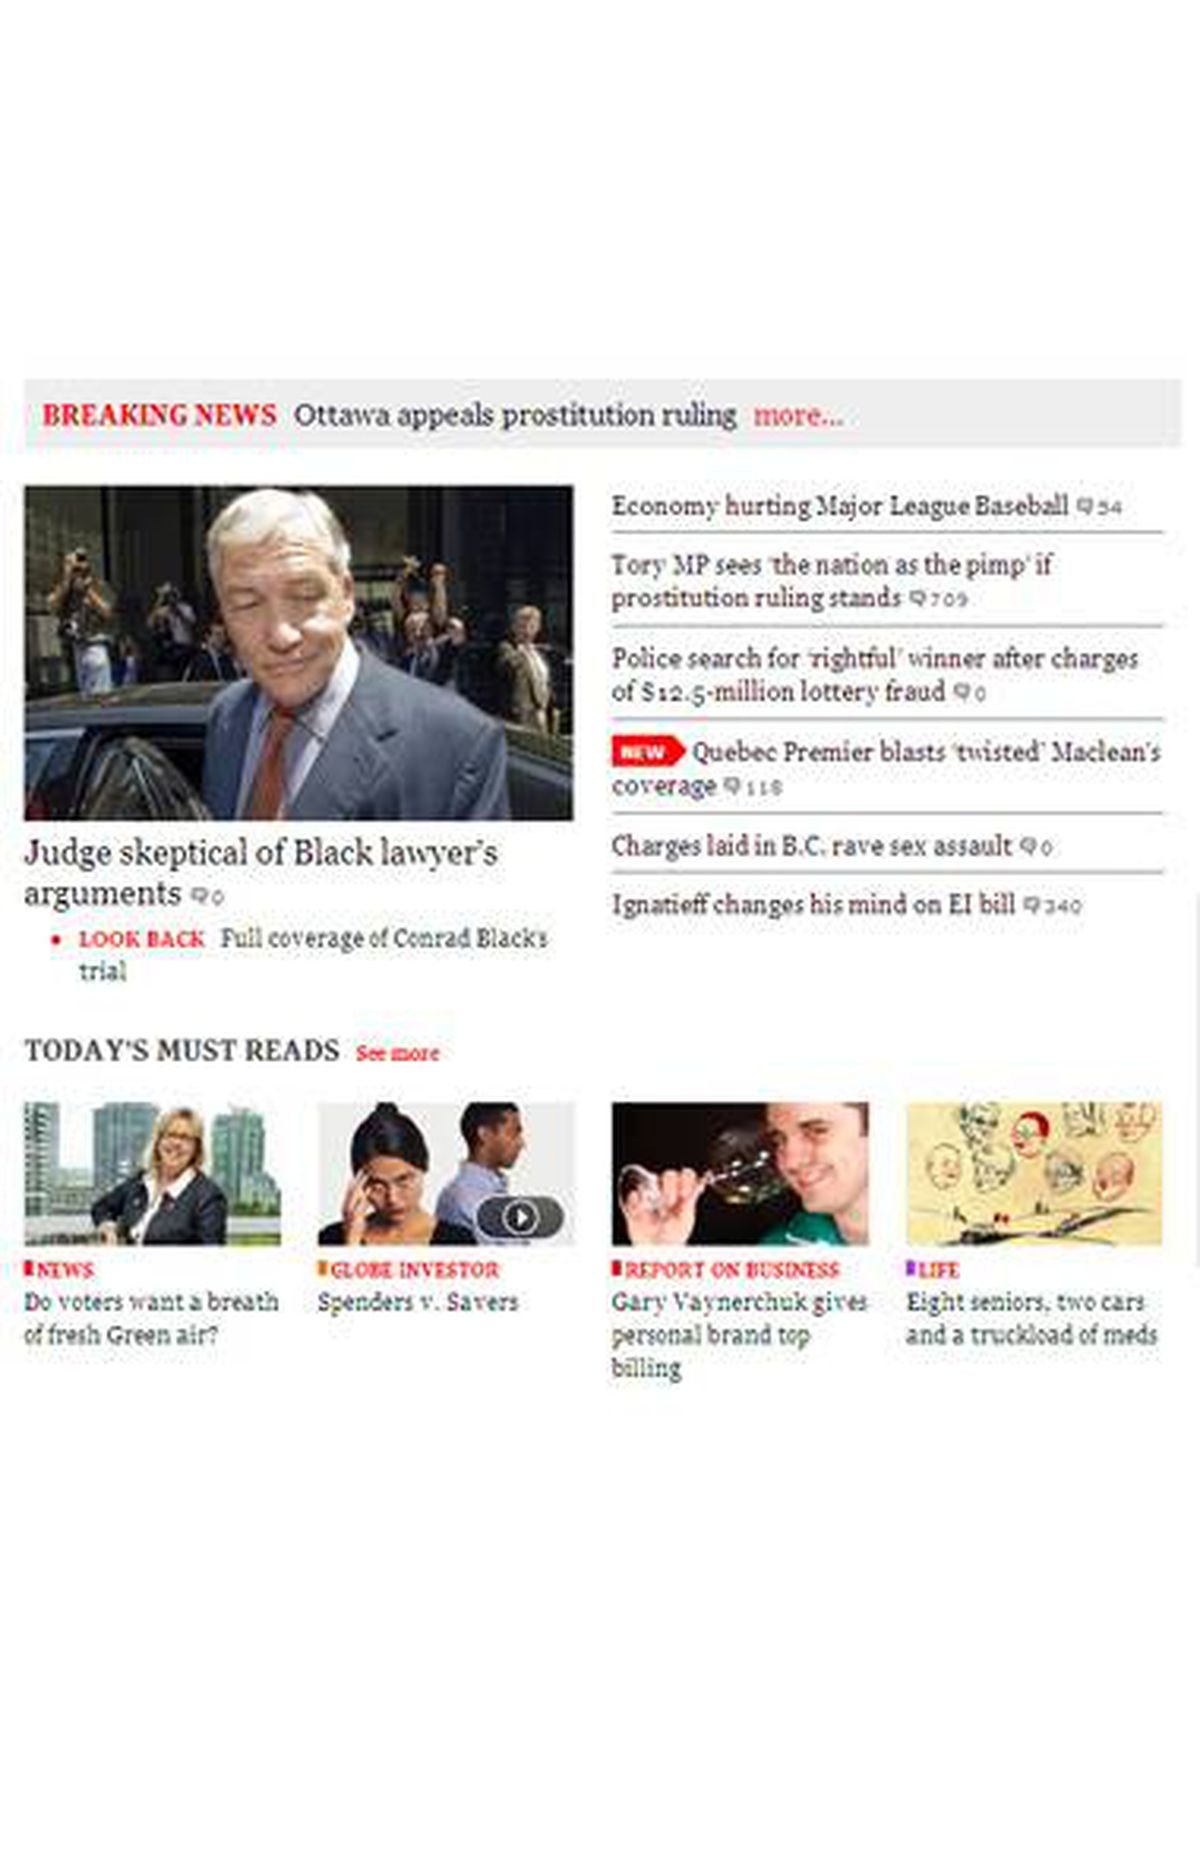 Top stories and our Must Reads section on our new home page.